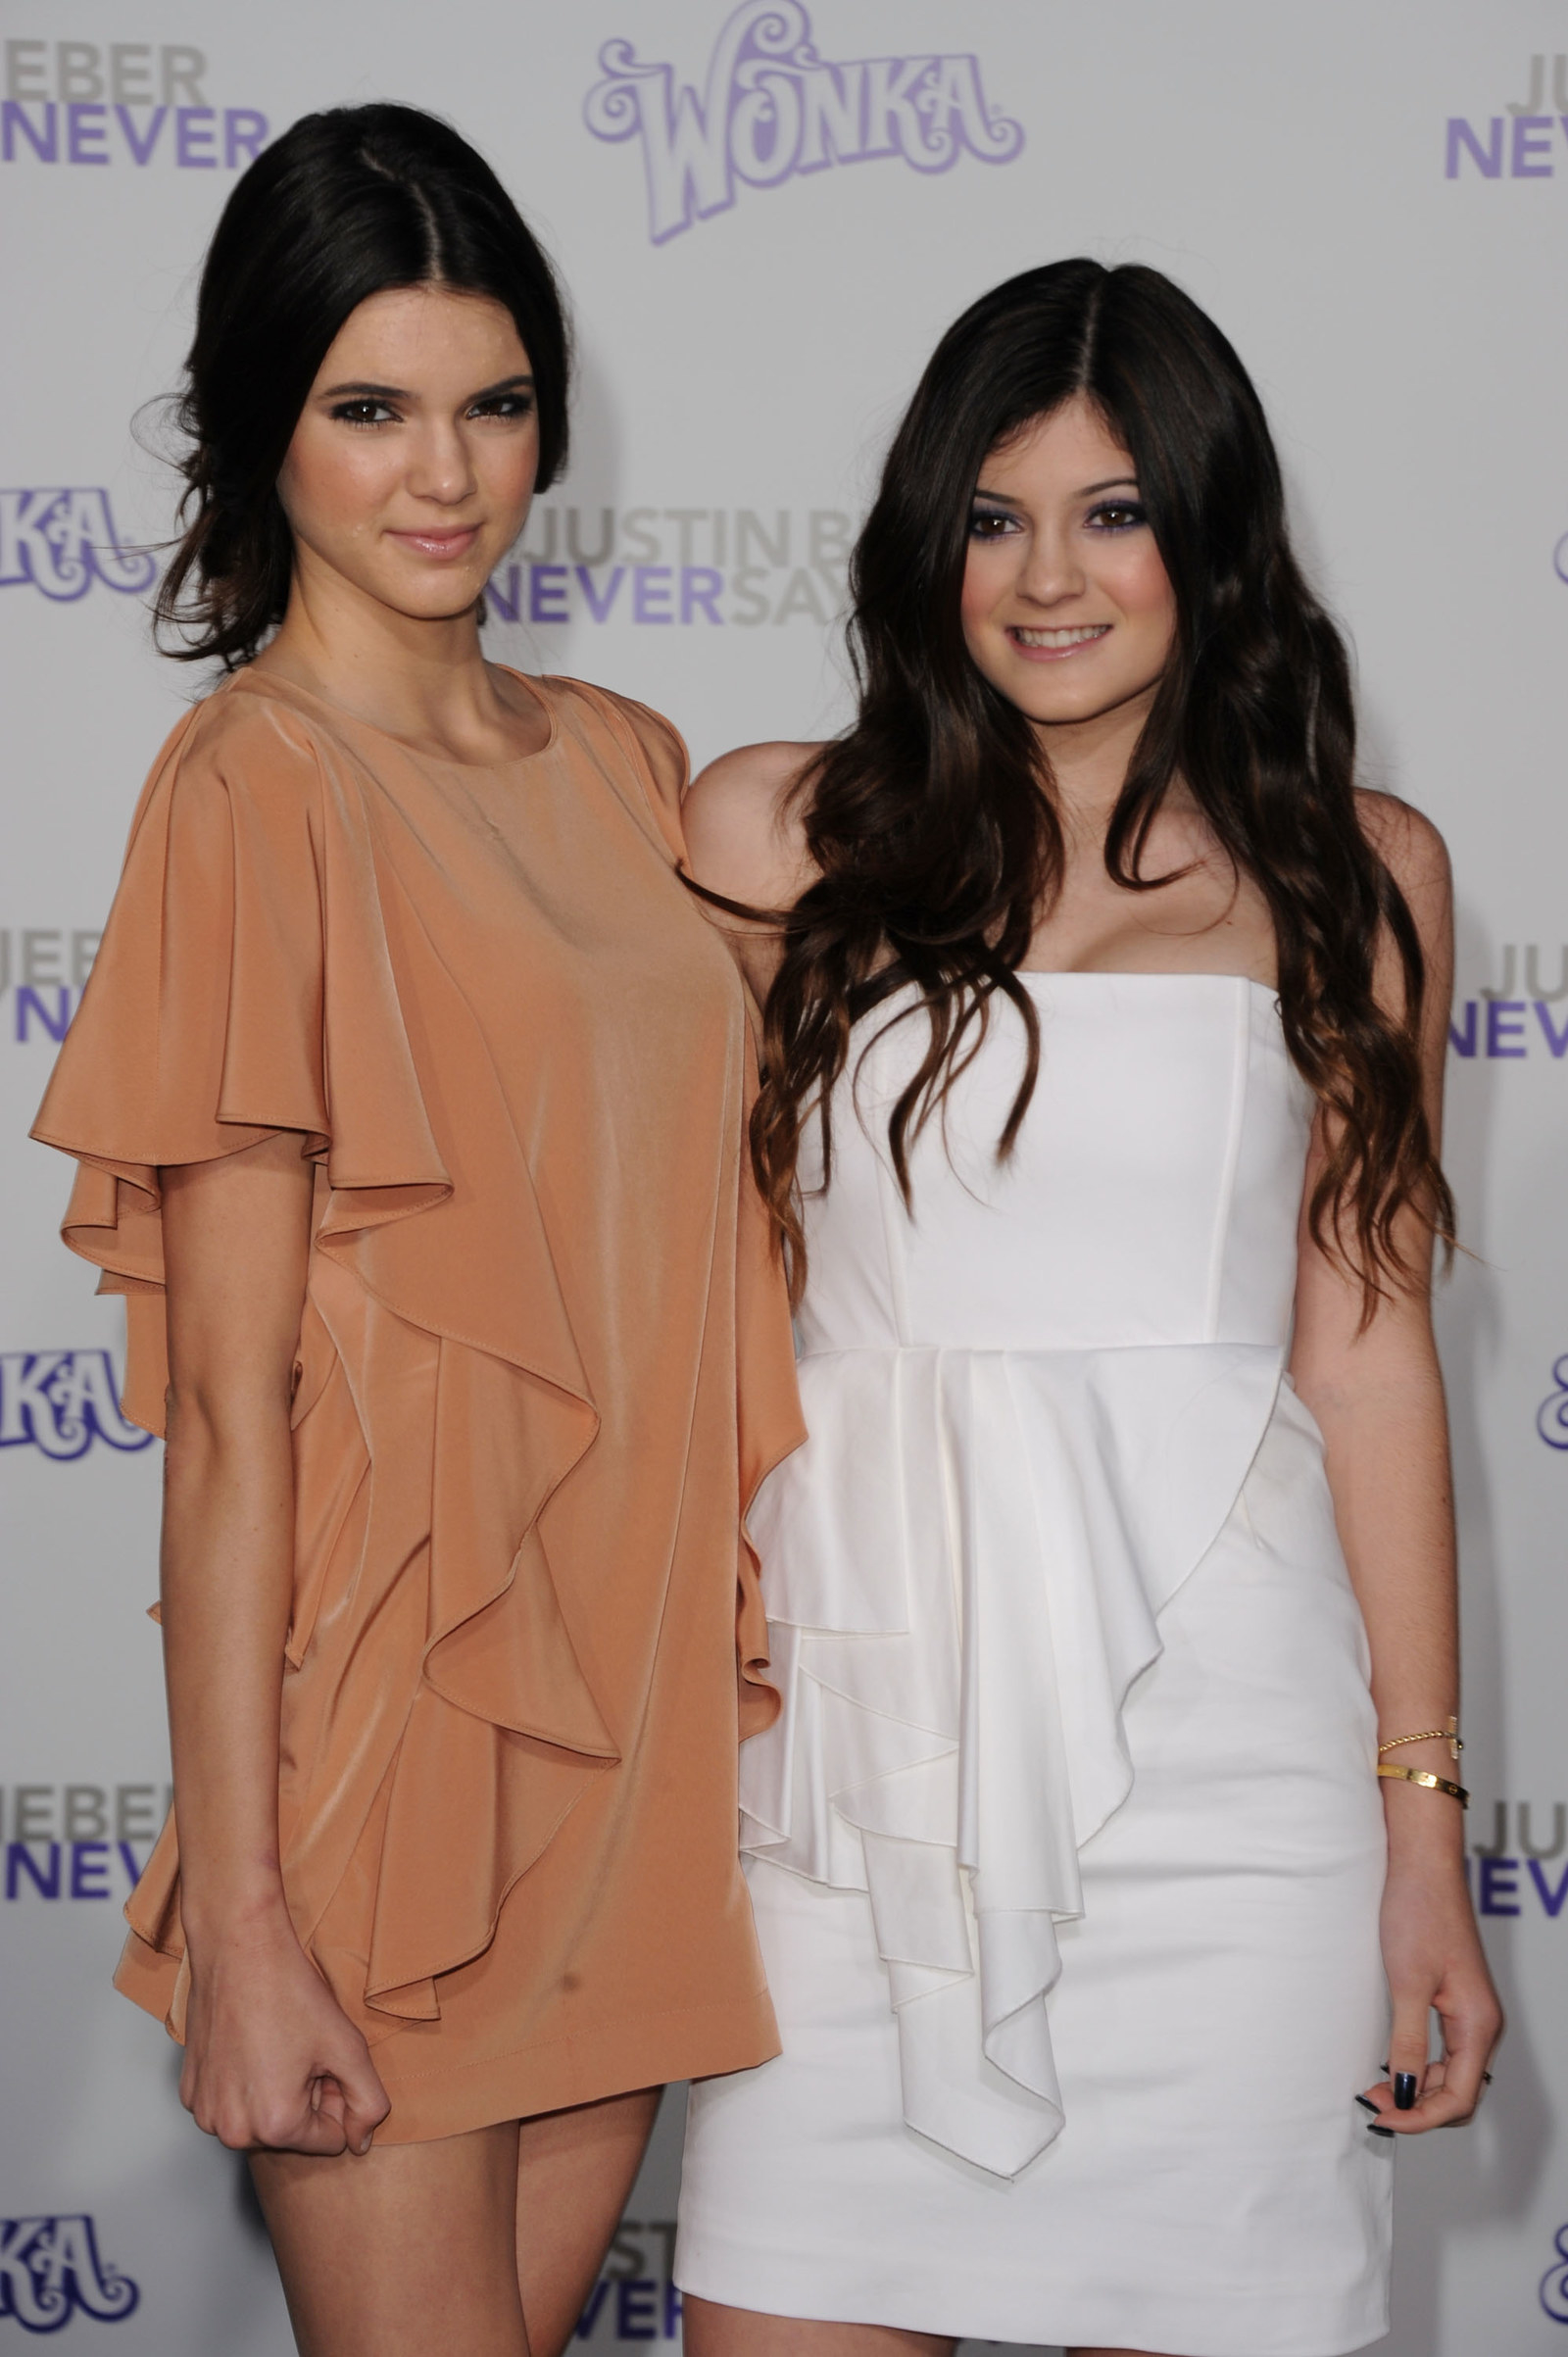 First and foremost, believe it or not, this is Kylie and Kendall Jenner